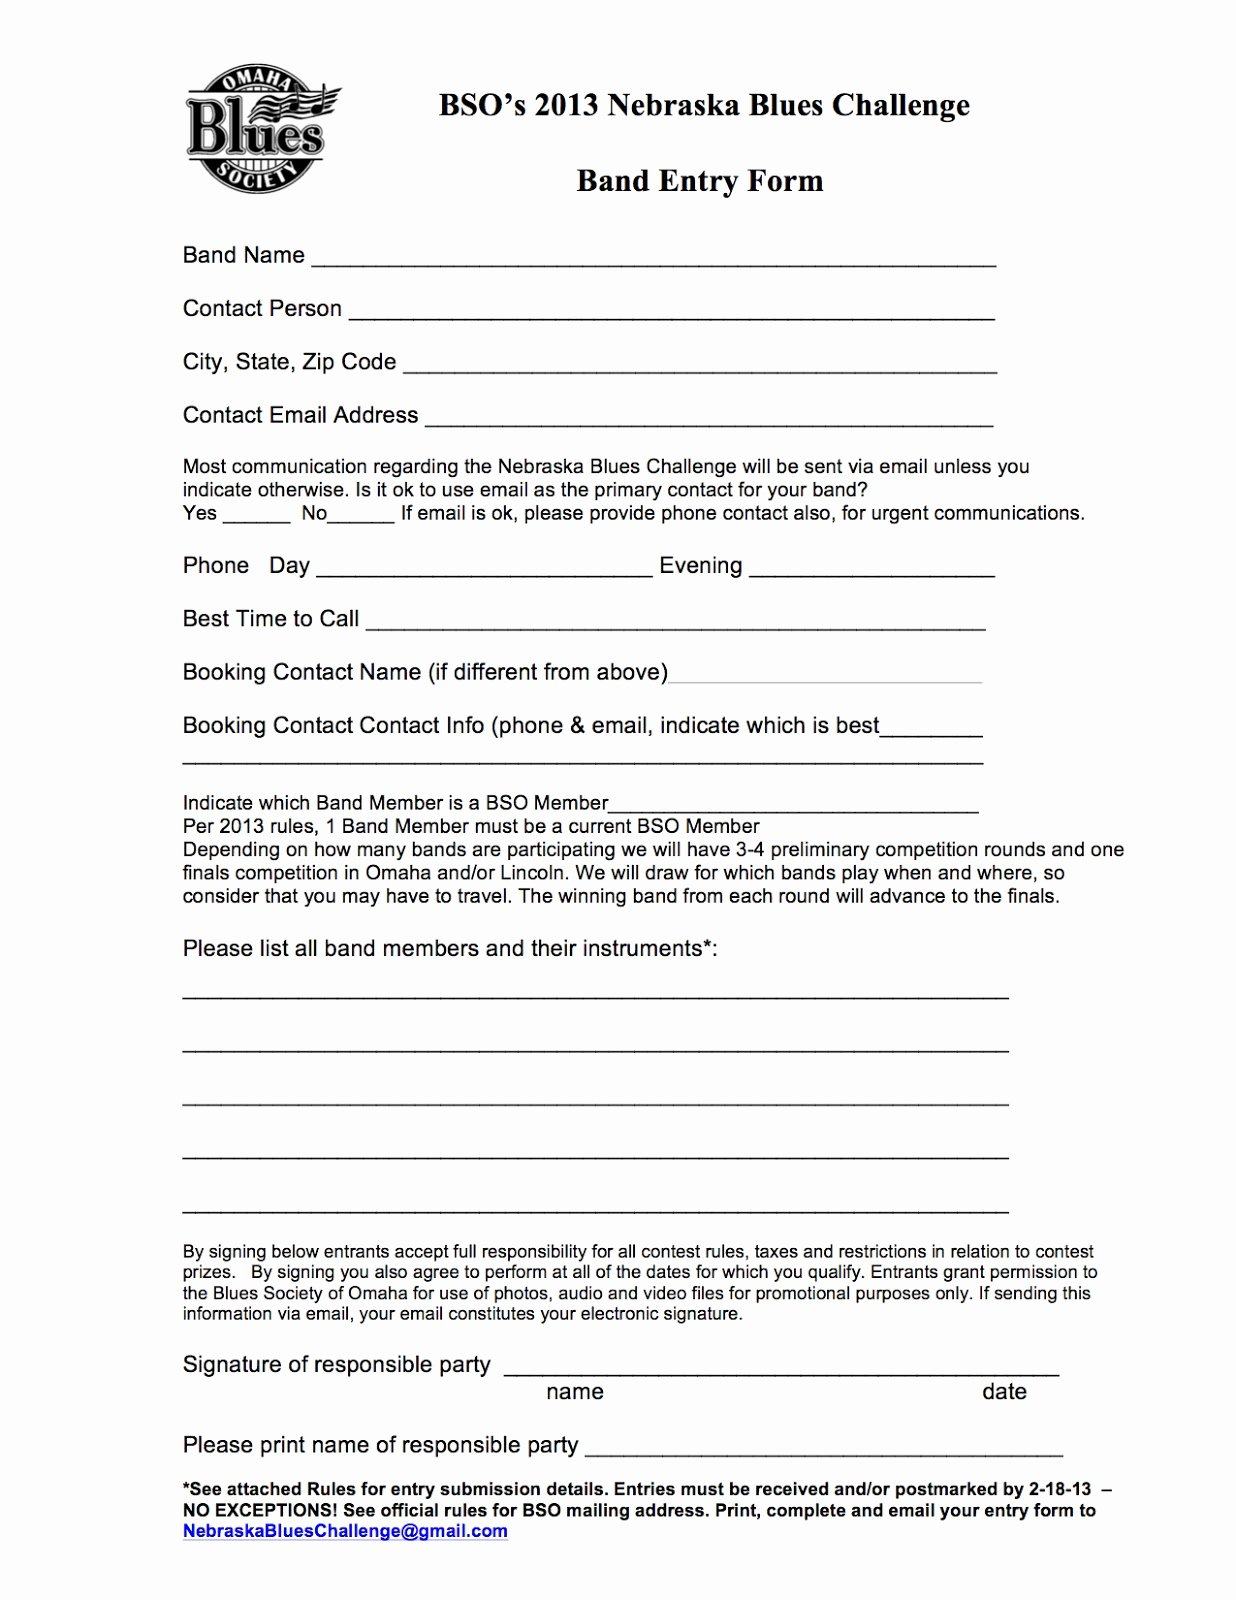 Contest Entry form Template New Nebraskablueschallenge Rules & Entry form for 2013 14